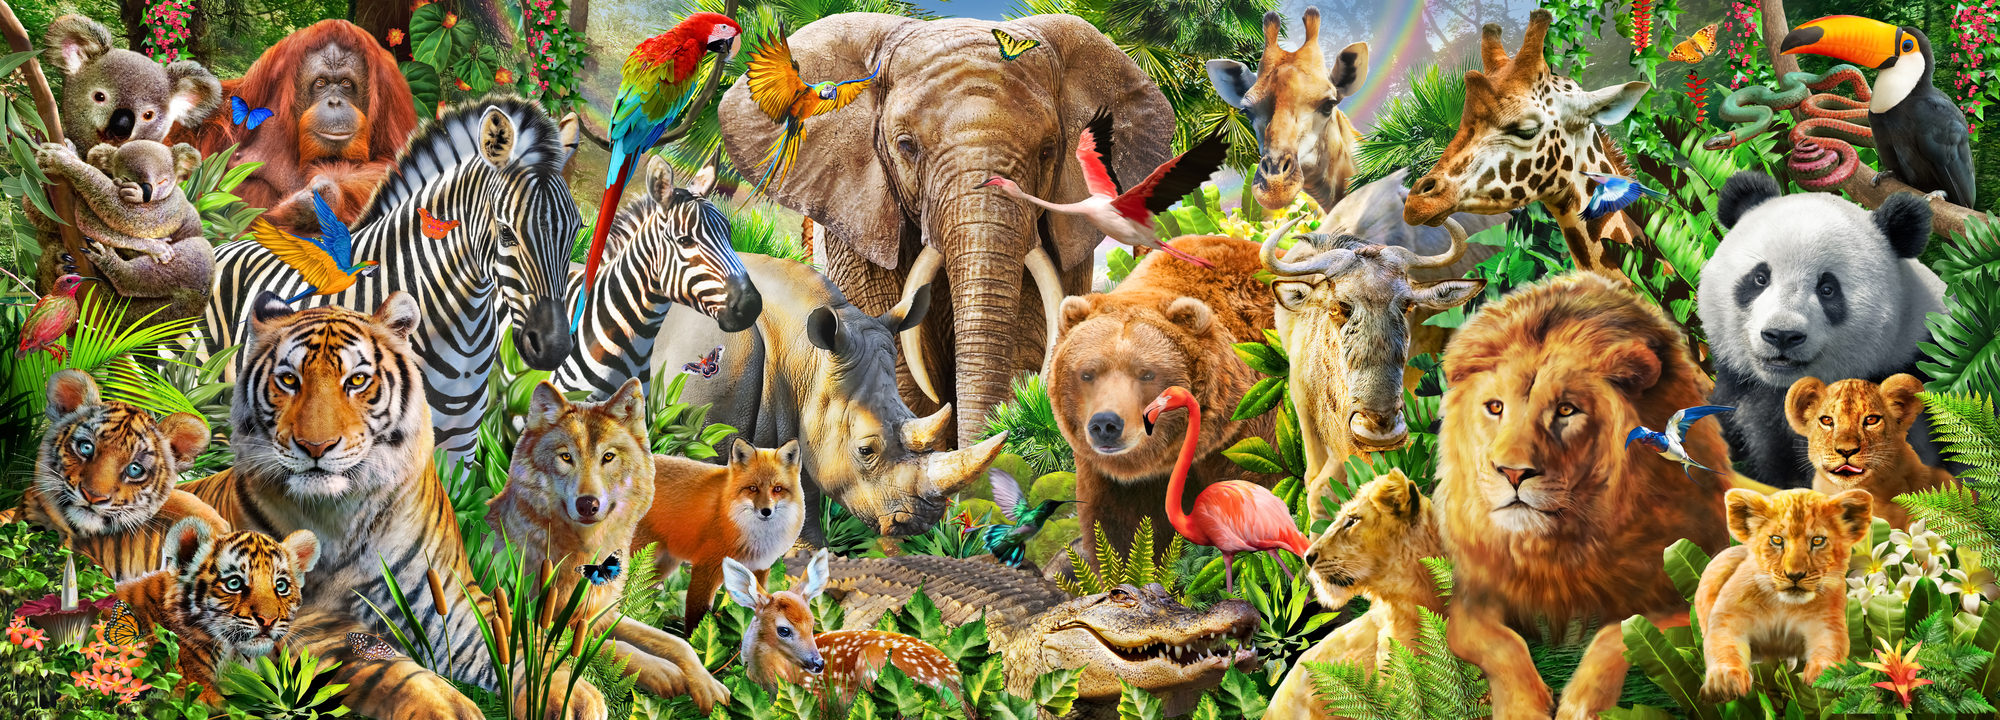 Animal mix panorama wall mural animal mix panorama for Animal wall mural